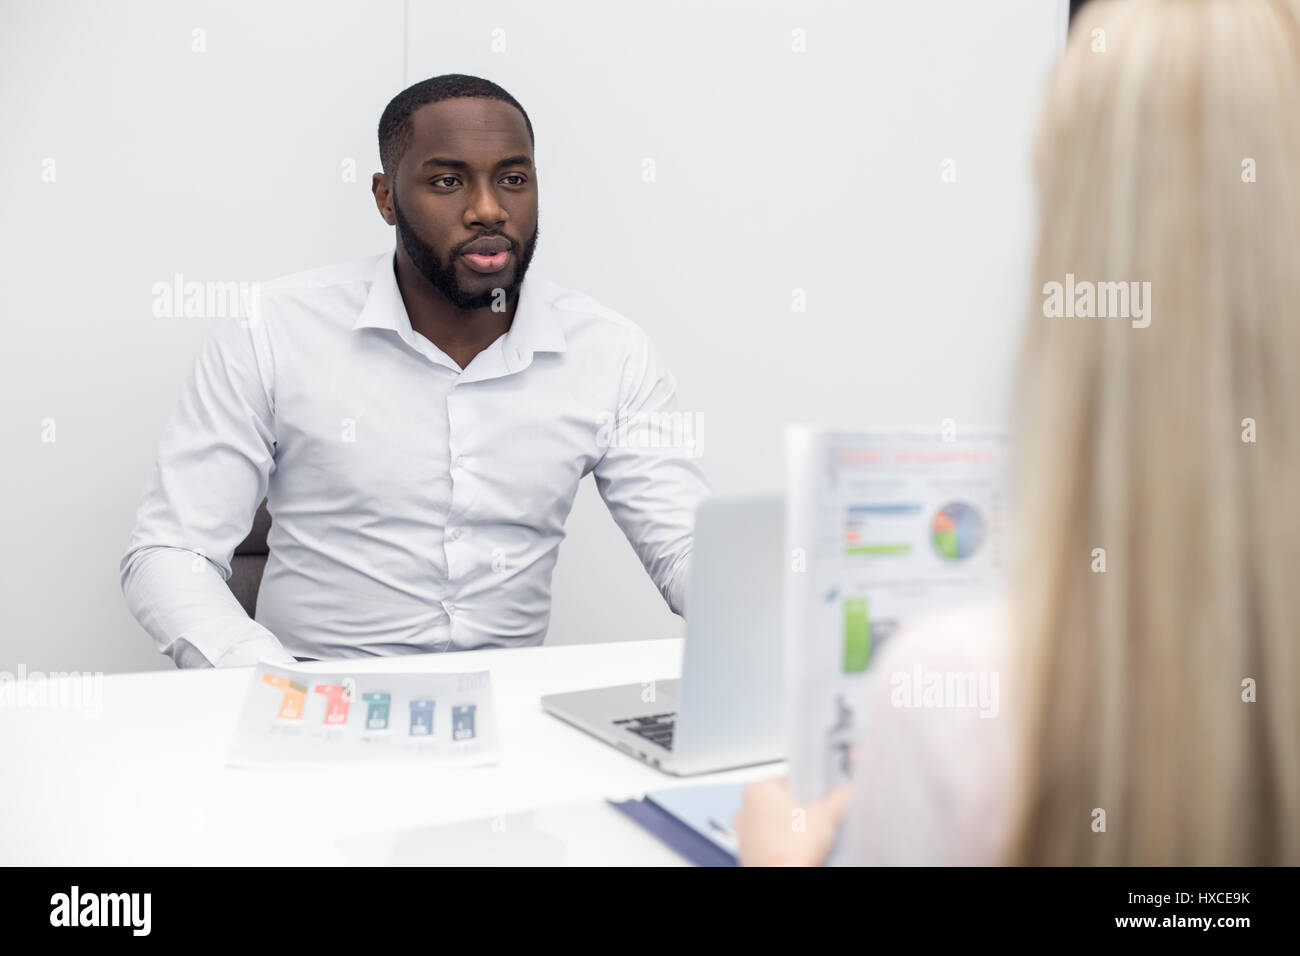 People Interview Job Application Concept - Stock Image